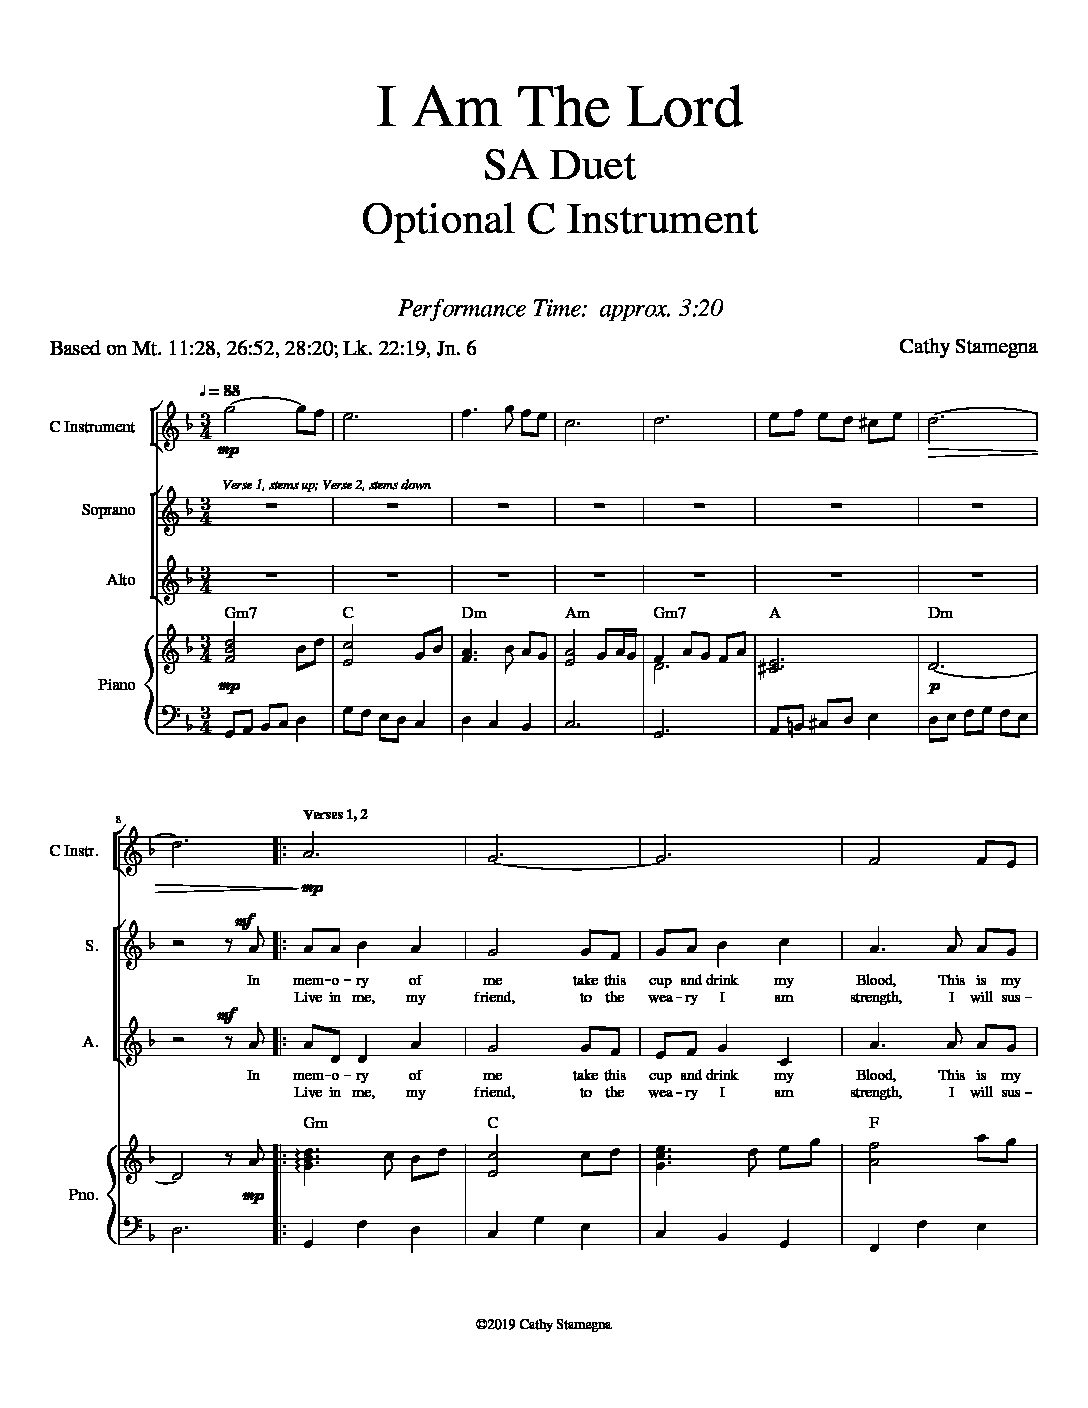 I Am the Lord (Vocal Duet, Chords, Optional C Instrument, Accompanied) for SA, ST, TB Duet